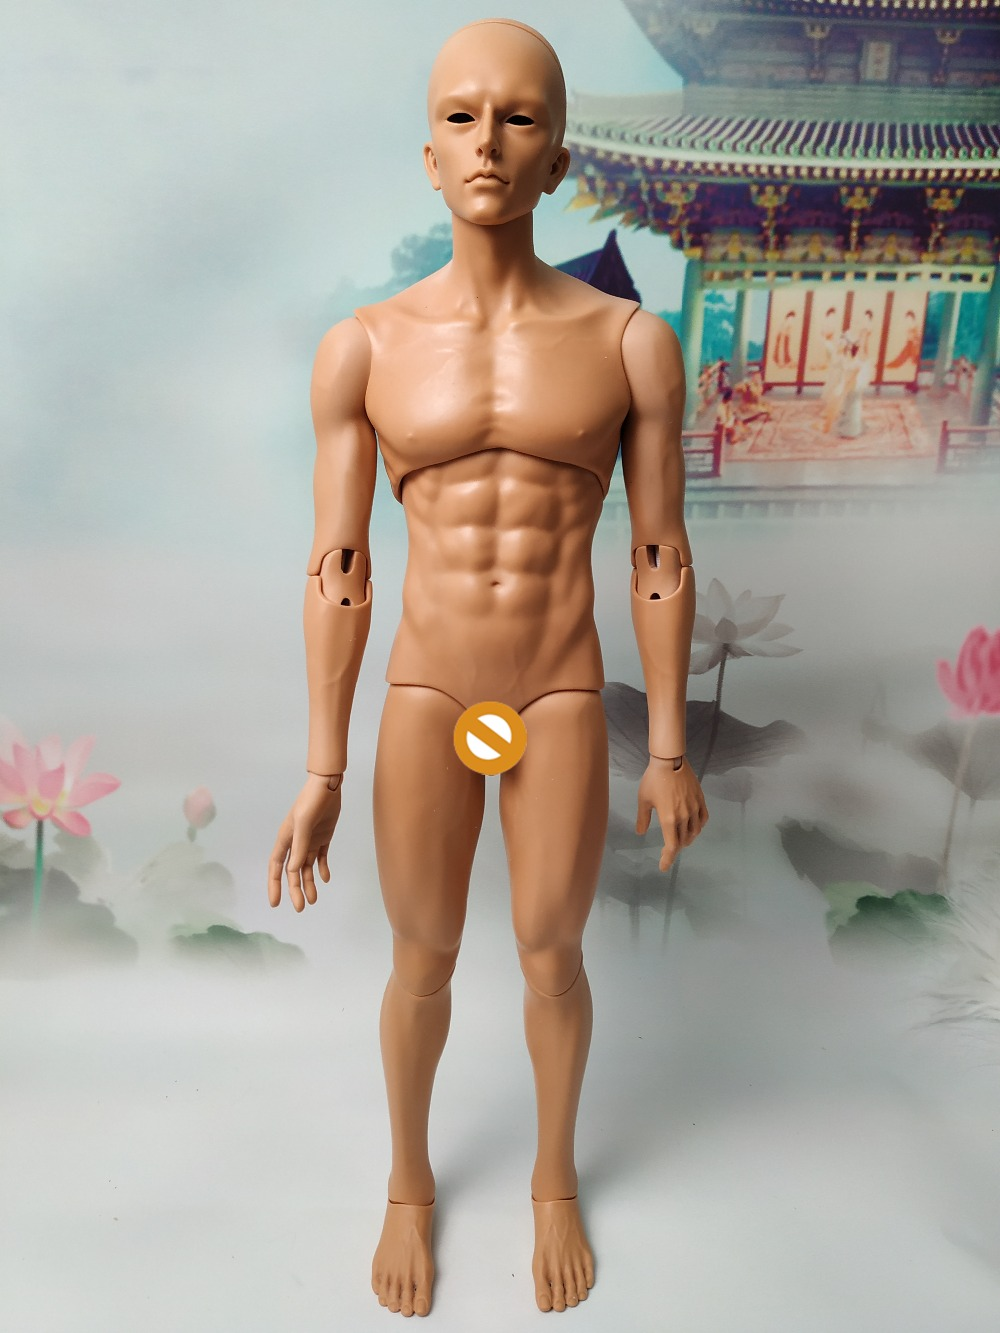 New Arrival Bjd Doll  Dollid Boy High Quality Small 3 Points Joint Dolls Free Care Products For Eyelids